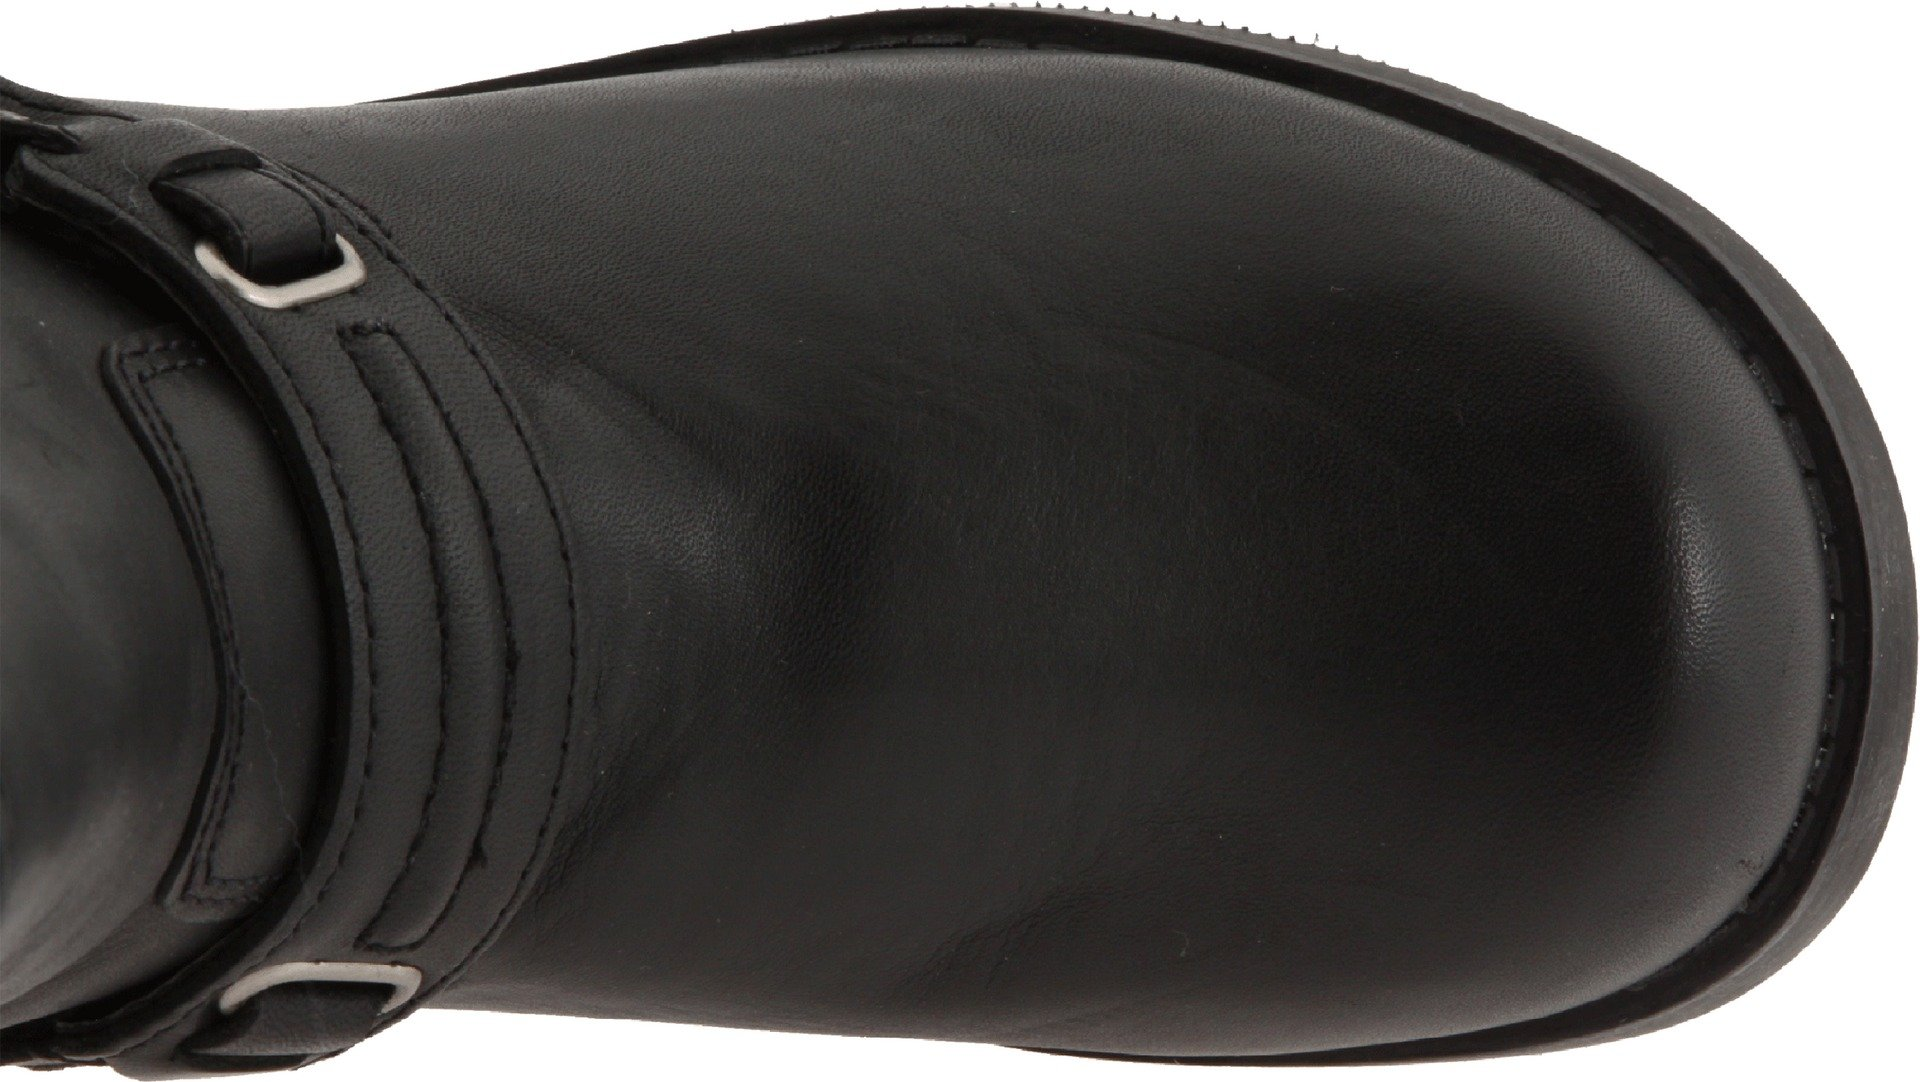 Harley-Davidson Women's Christa Motorcycle Harness Boot, Black, 11 M US by Harley-Davidson (Image #7)